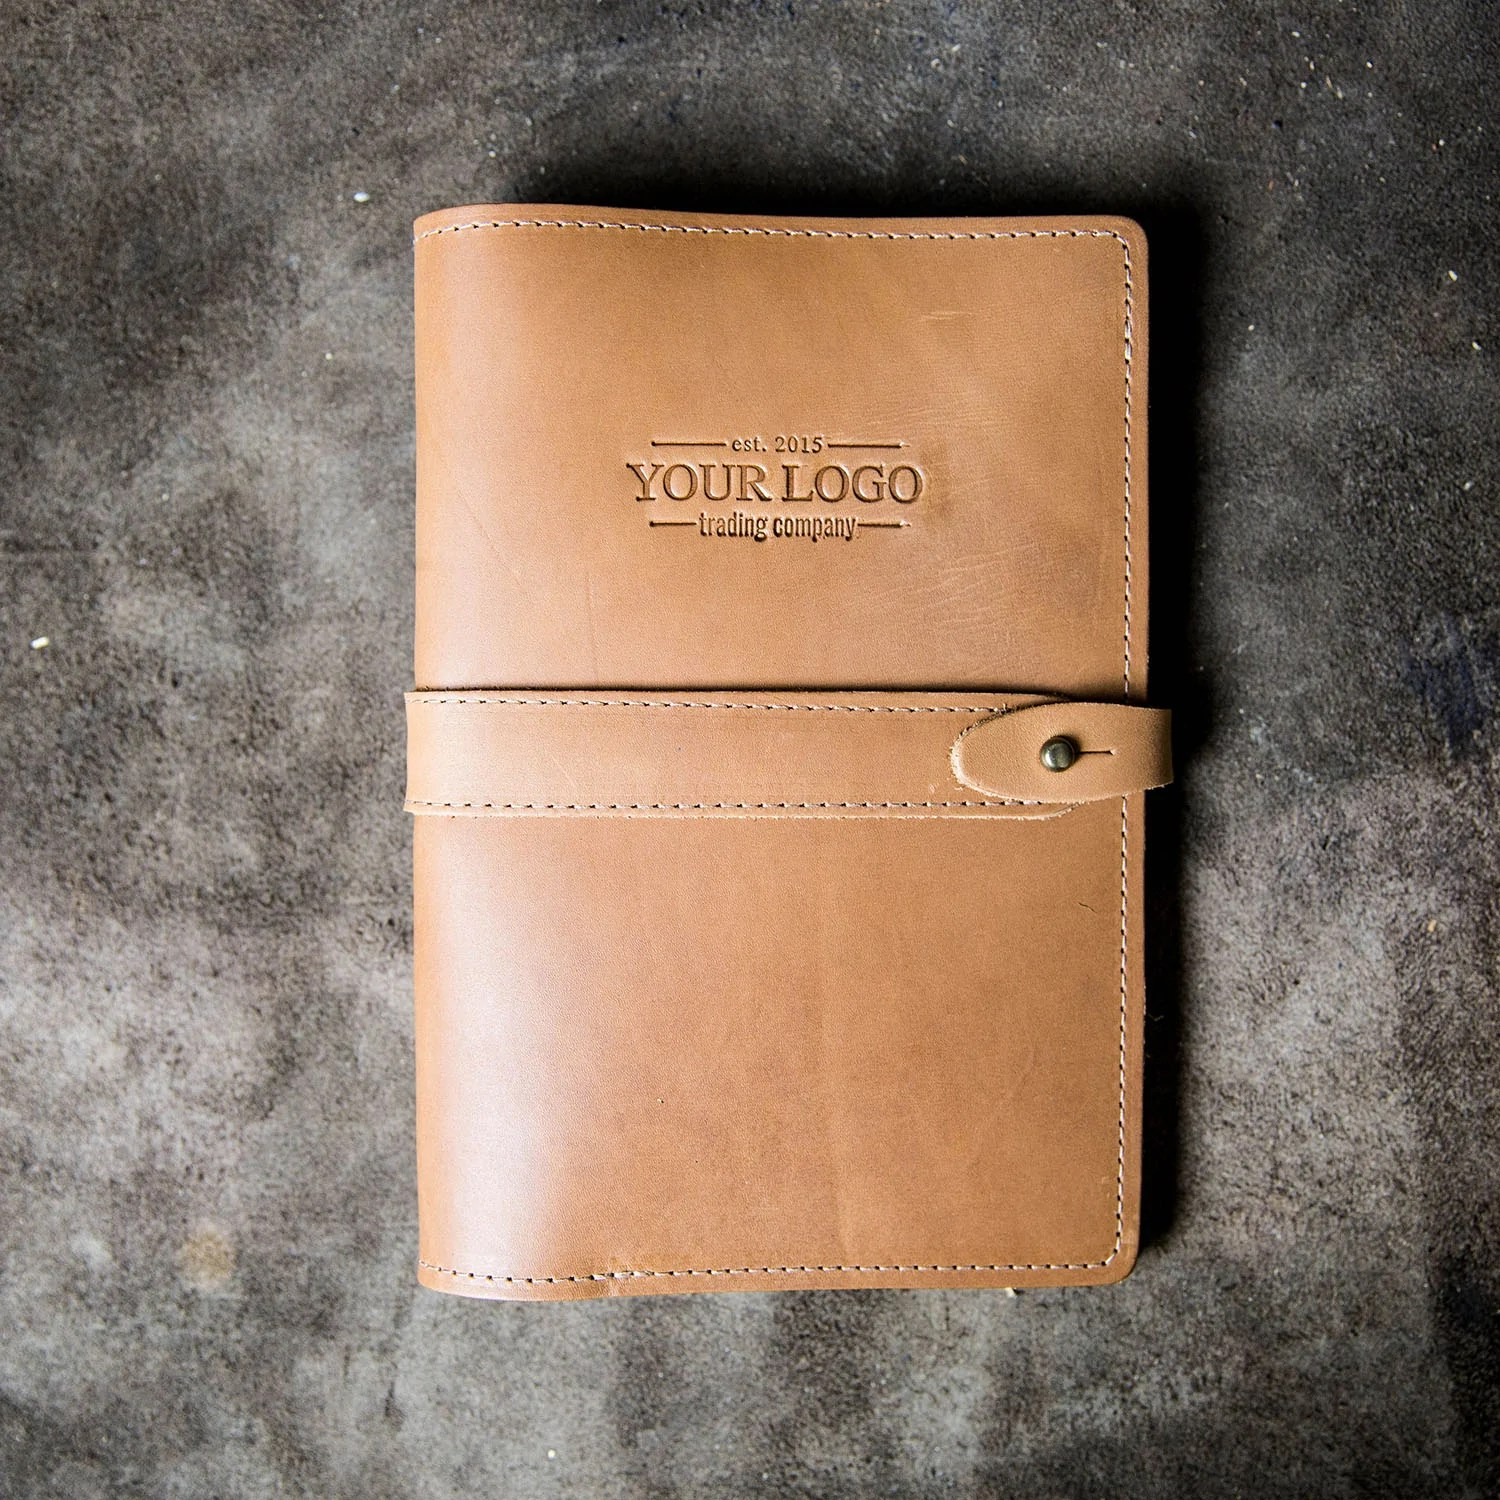 Moleskine A5 The Inventor Custom Logo Fine Leather A5 Moleskine Journal Diary Put Your Logo On It Corporate